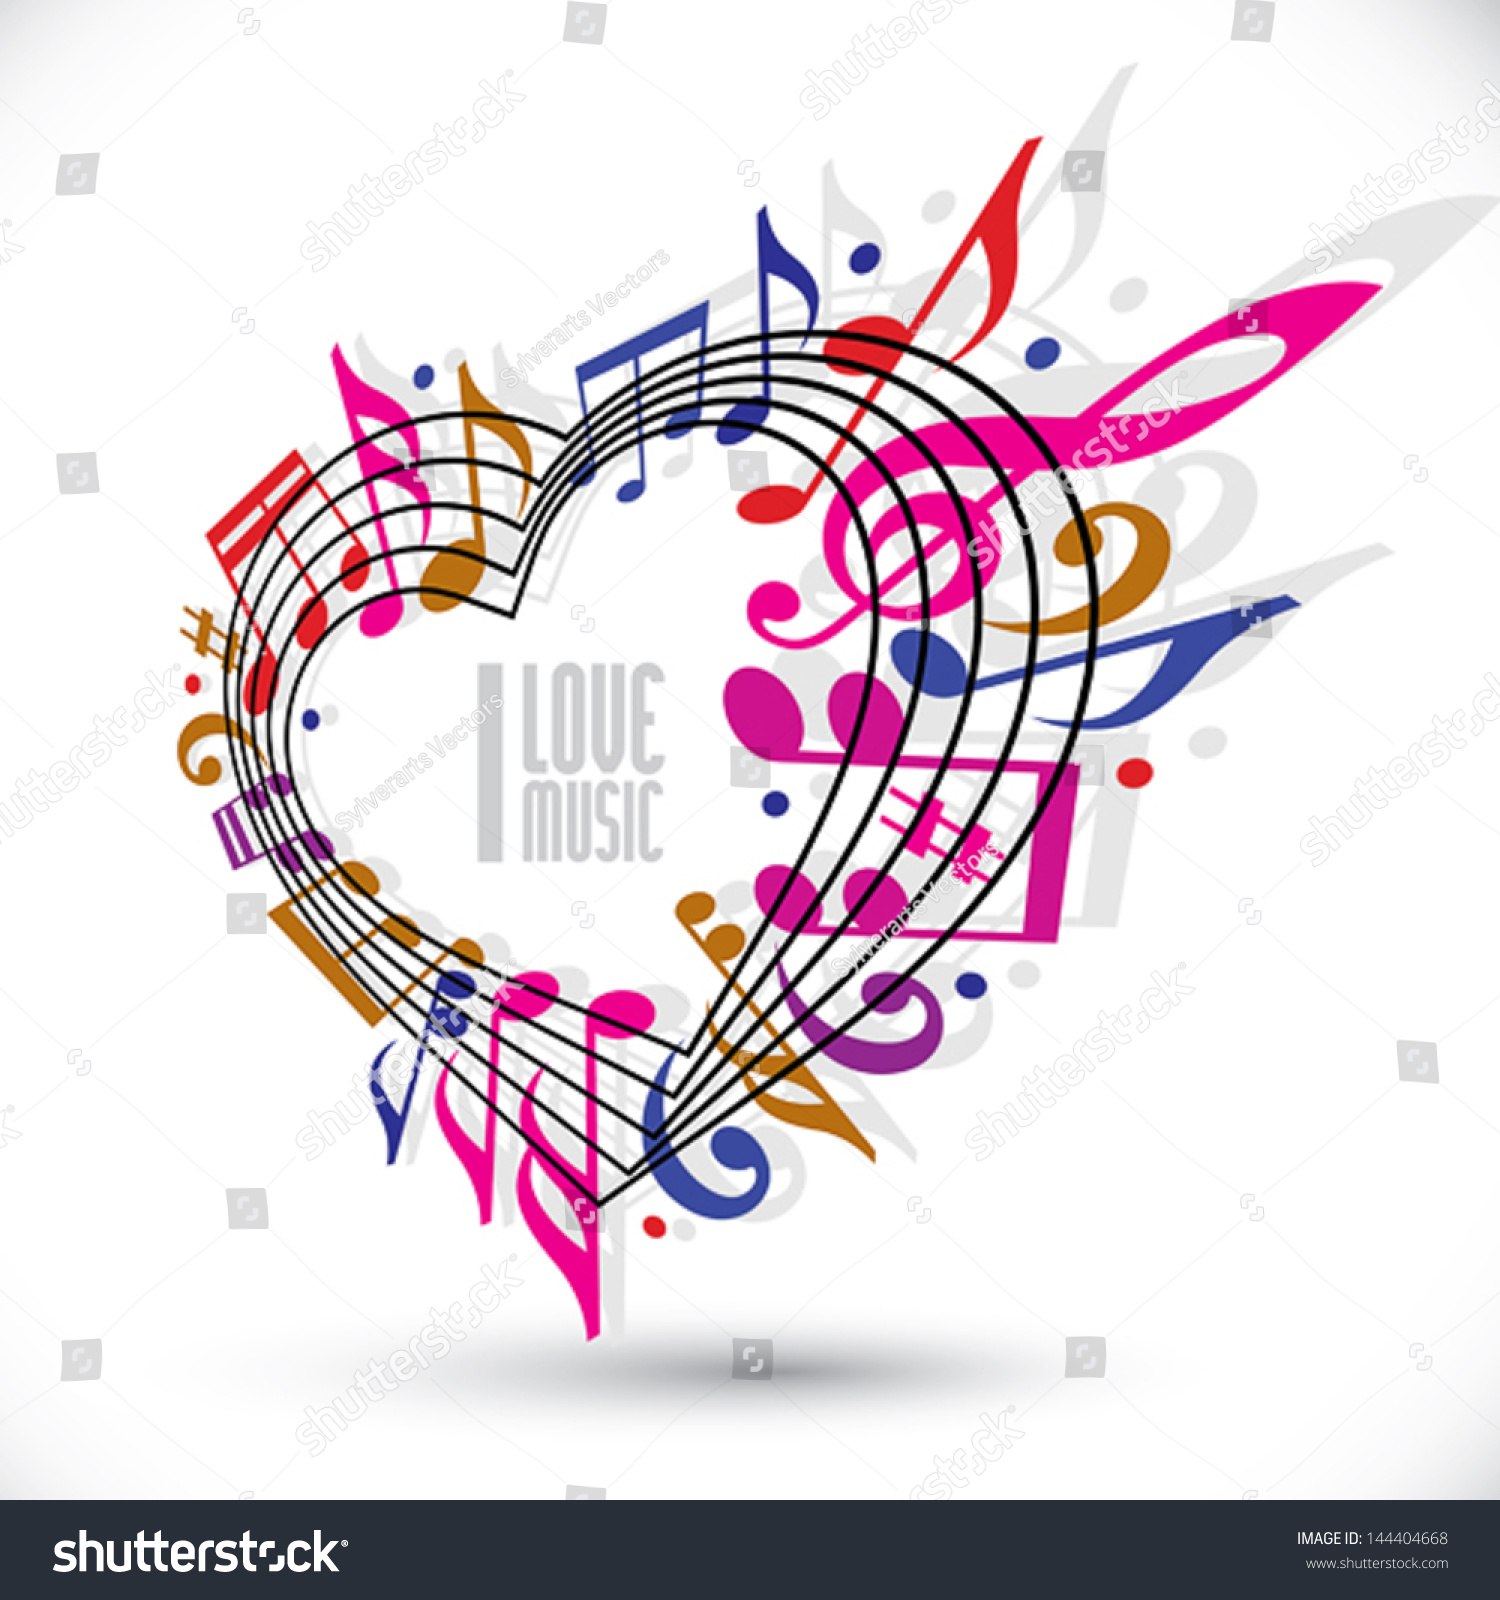 stock-vector-i-love-music-template-in-red-pink-and-violet-colors-rotated-in-d-heart-made-with-musical-notes-144404668.jpg